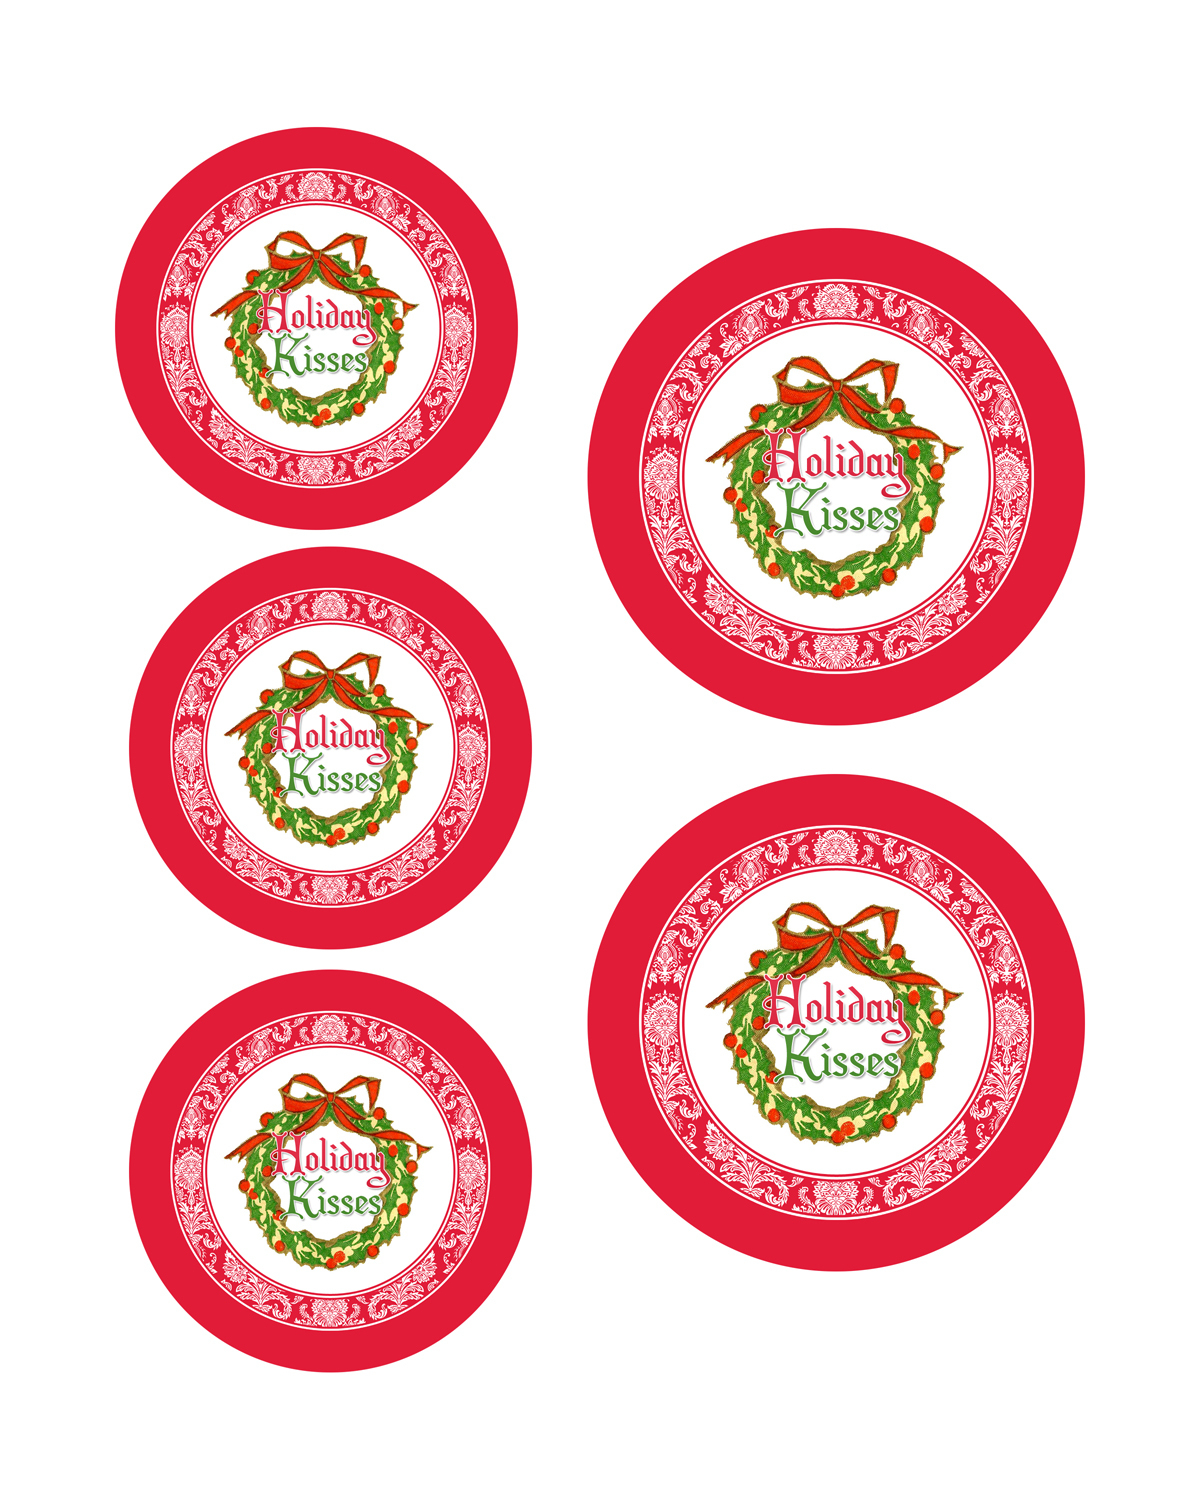 Printable Candy Jar Labels For The Holidays - The Graphics Fairy - Free Printable Jar Labels Christmas